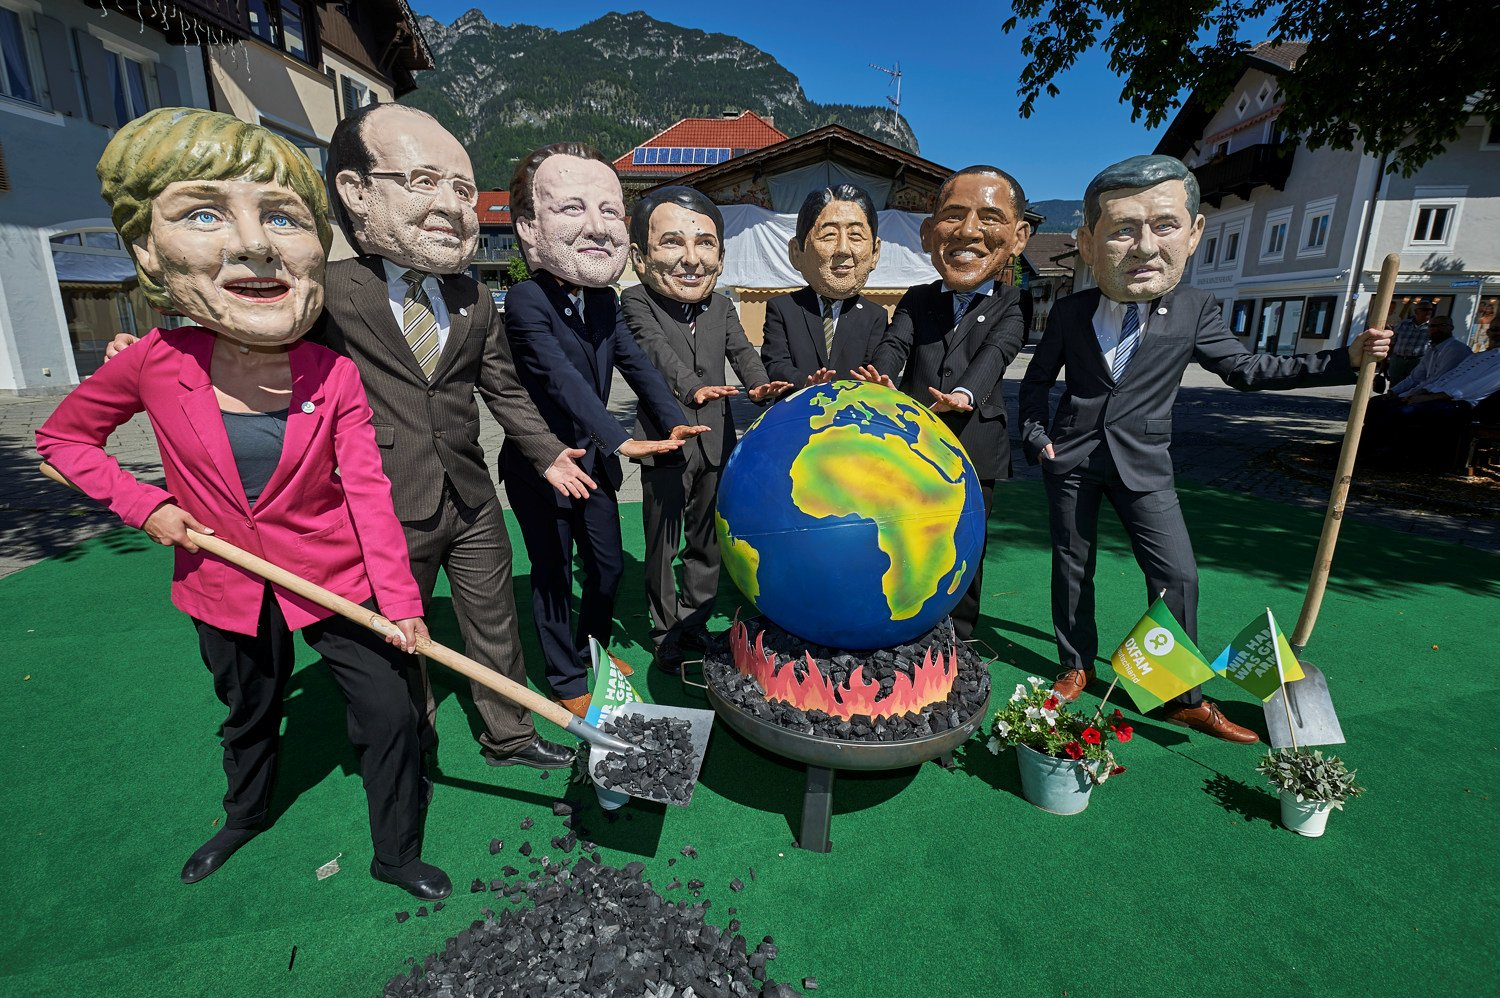 Oxfam is calling for G7 leaders, pictured barbecuing the planet at the G7 Summit, to kick their dirty coal habit.